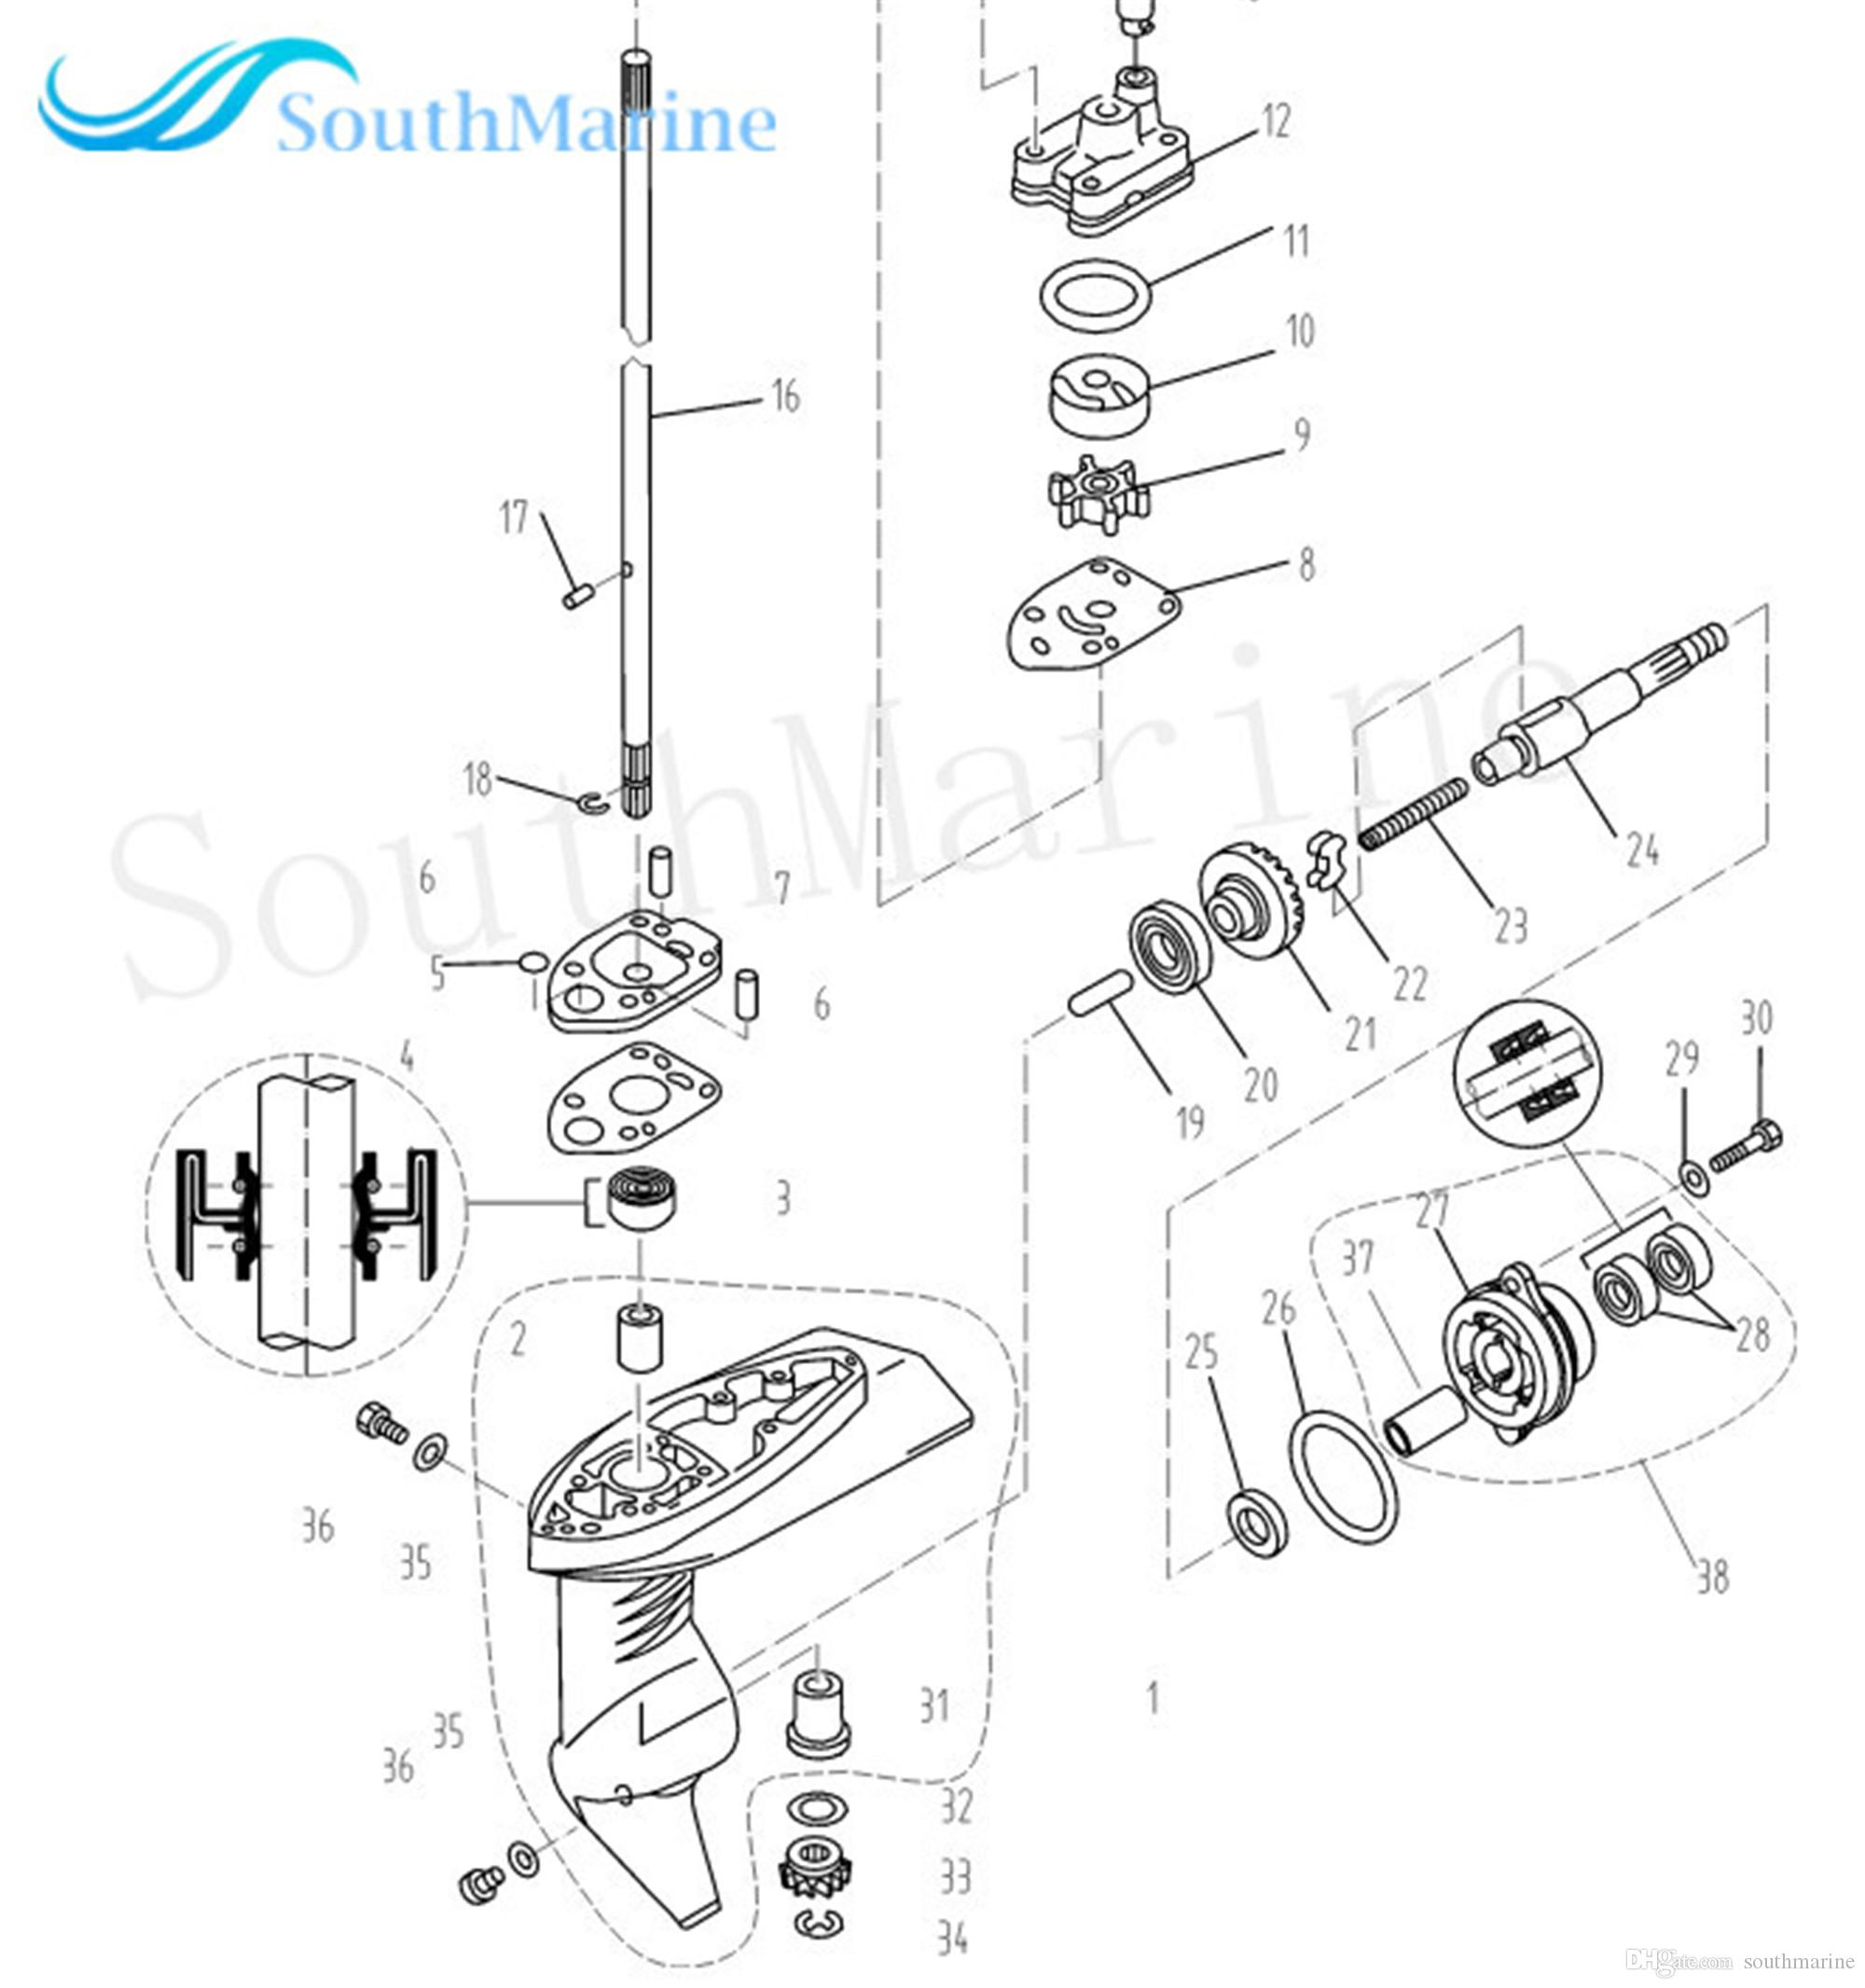 Outboard Motor Dimensions